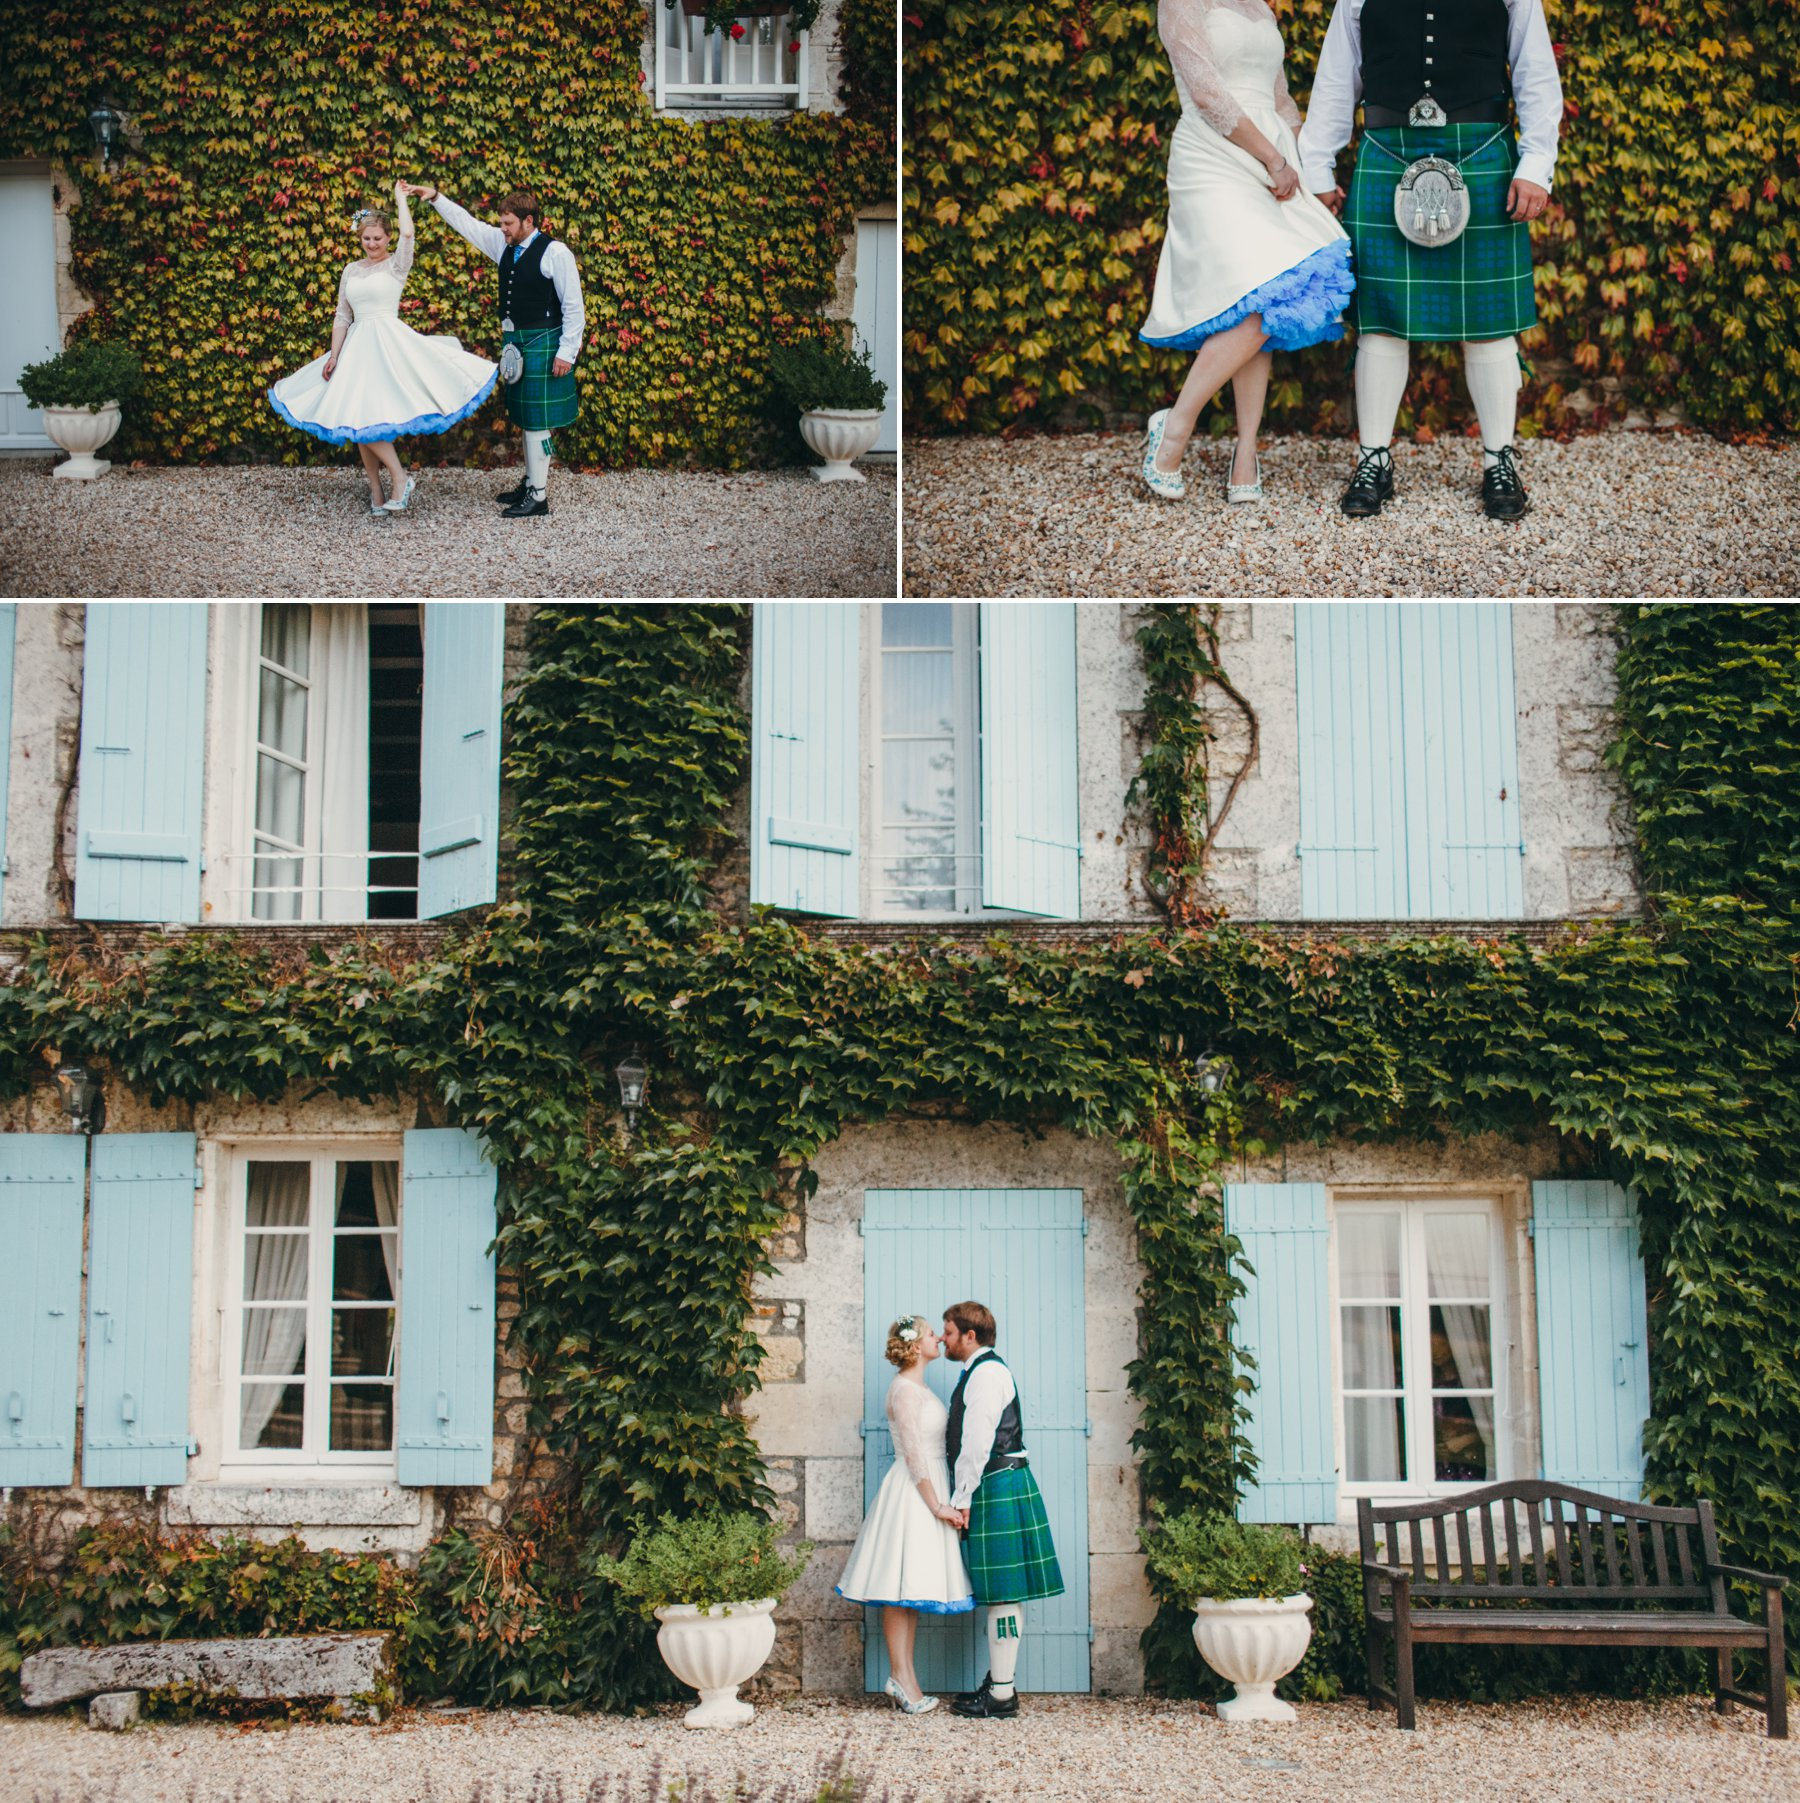 petitmoulin_france_bordeaux_weddings_0124